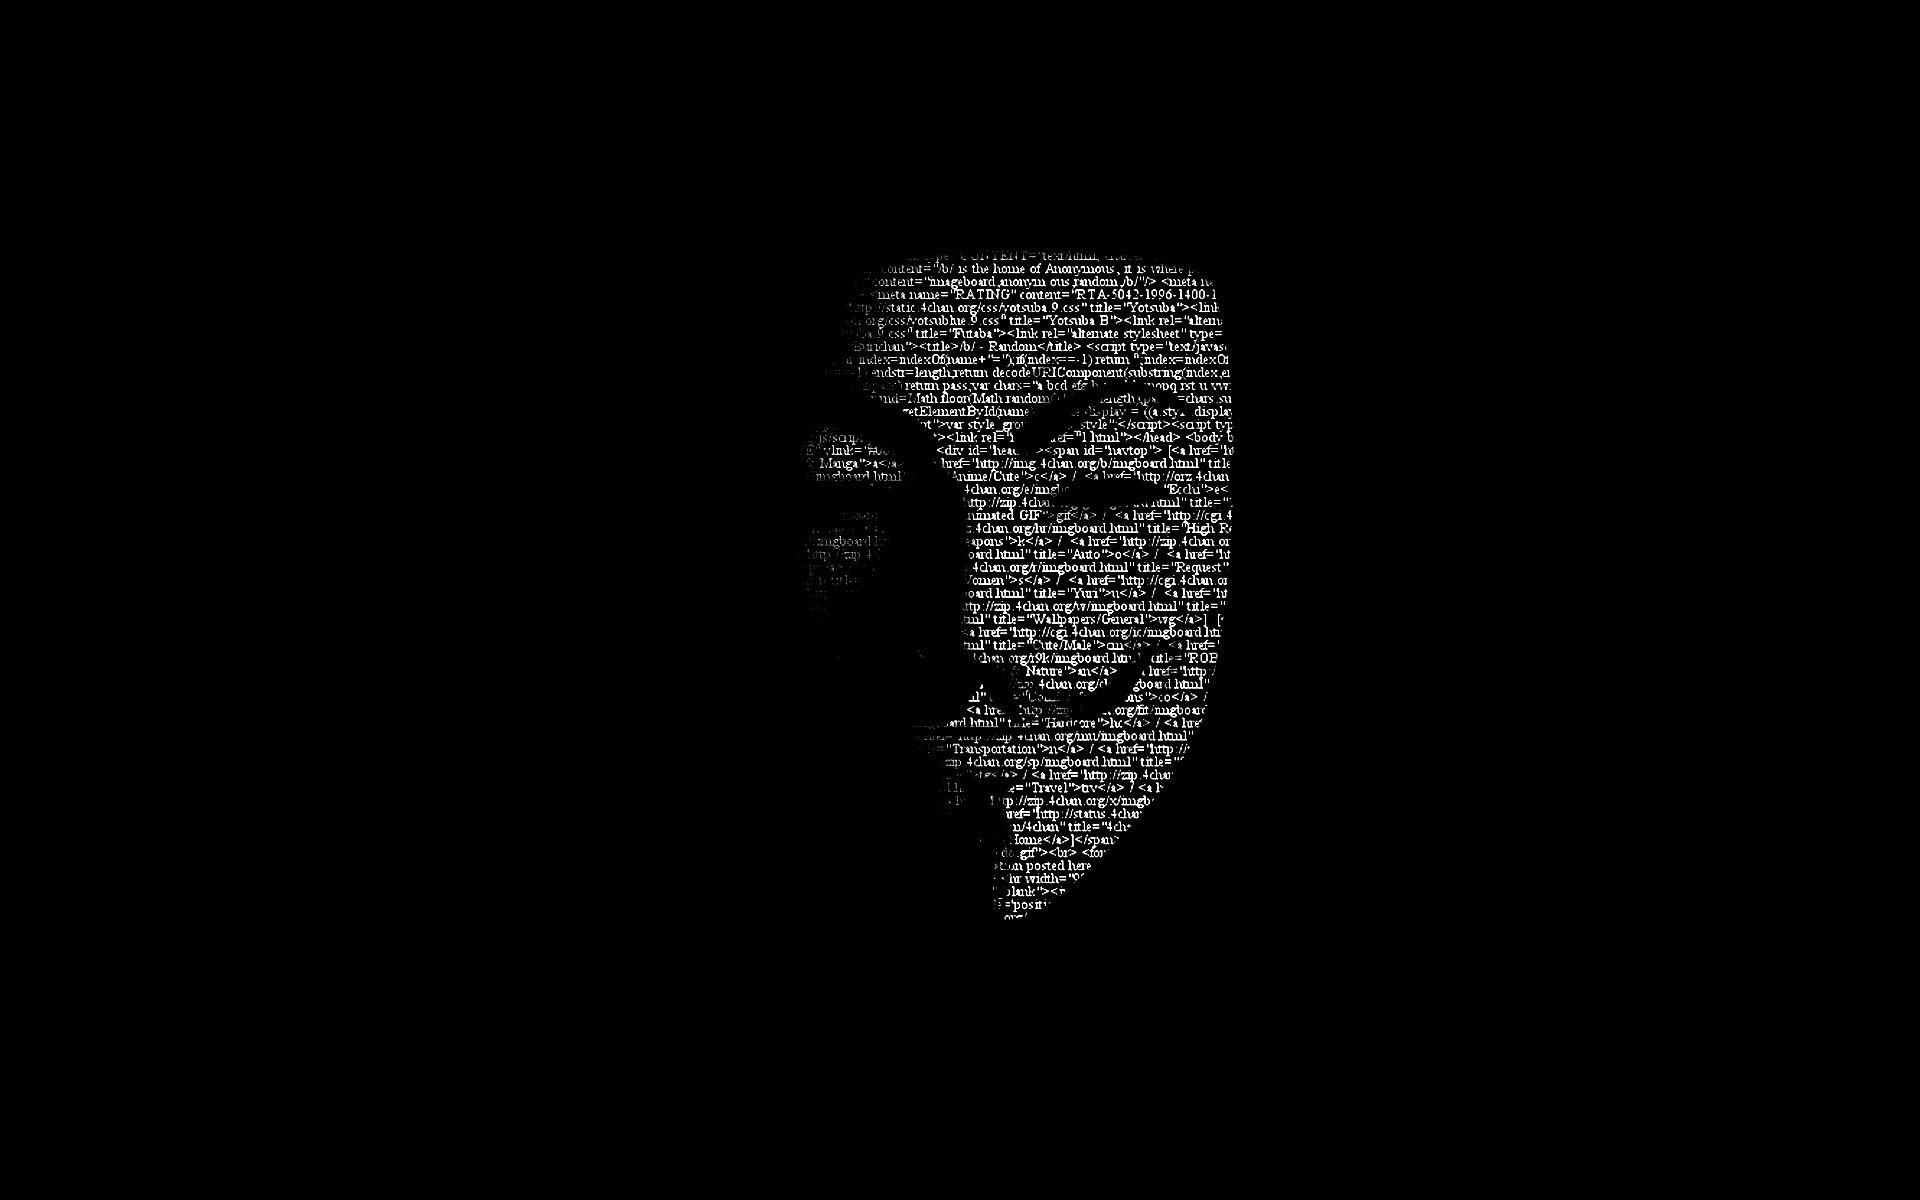 anonymous hacker mask wallpapers top free anonymous hacker mask backgrounds wallpaperaccess anonymous hacker mask wallpapers top